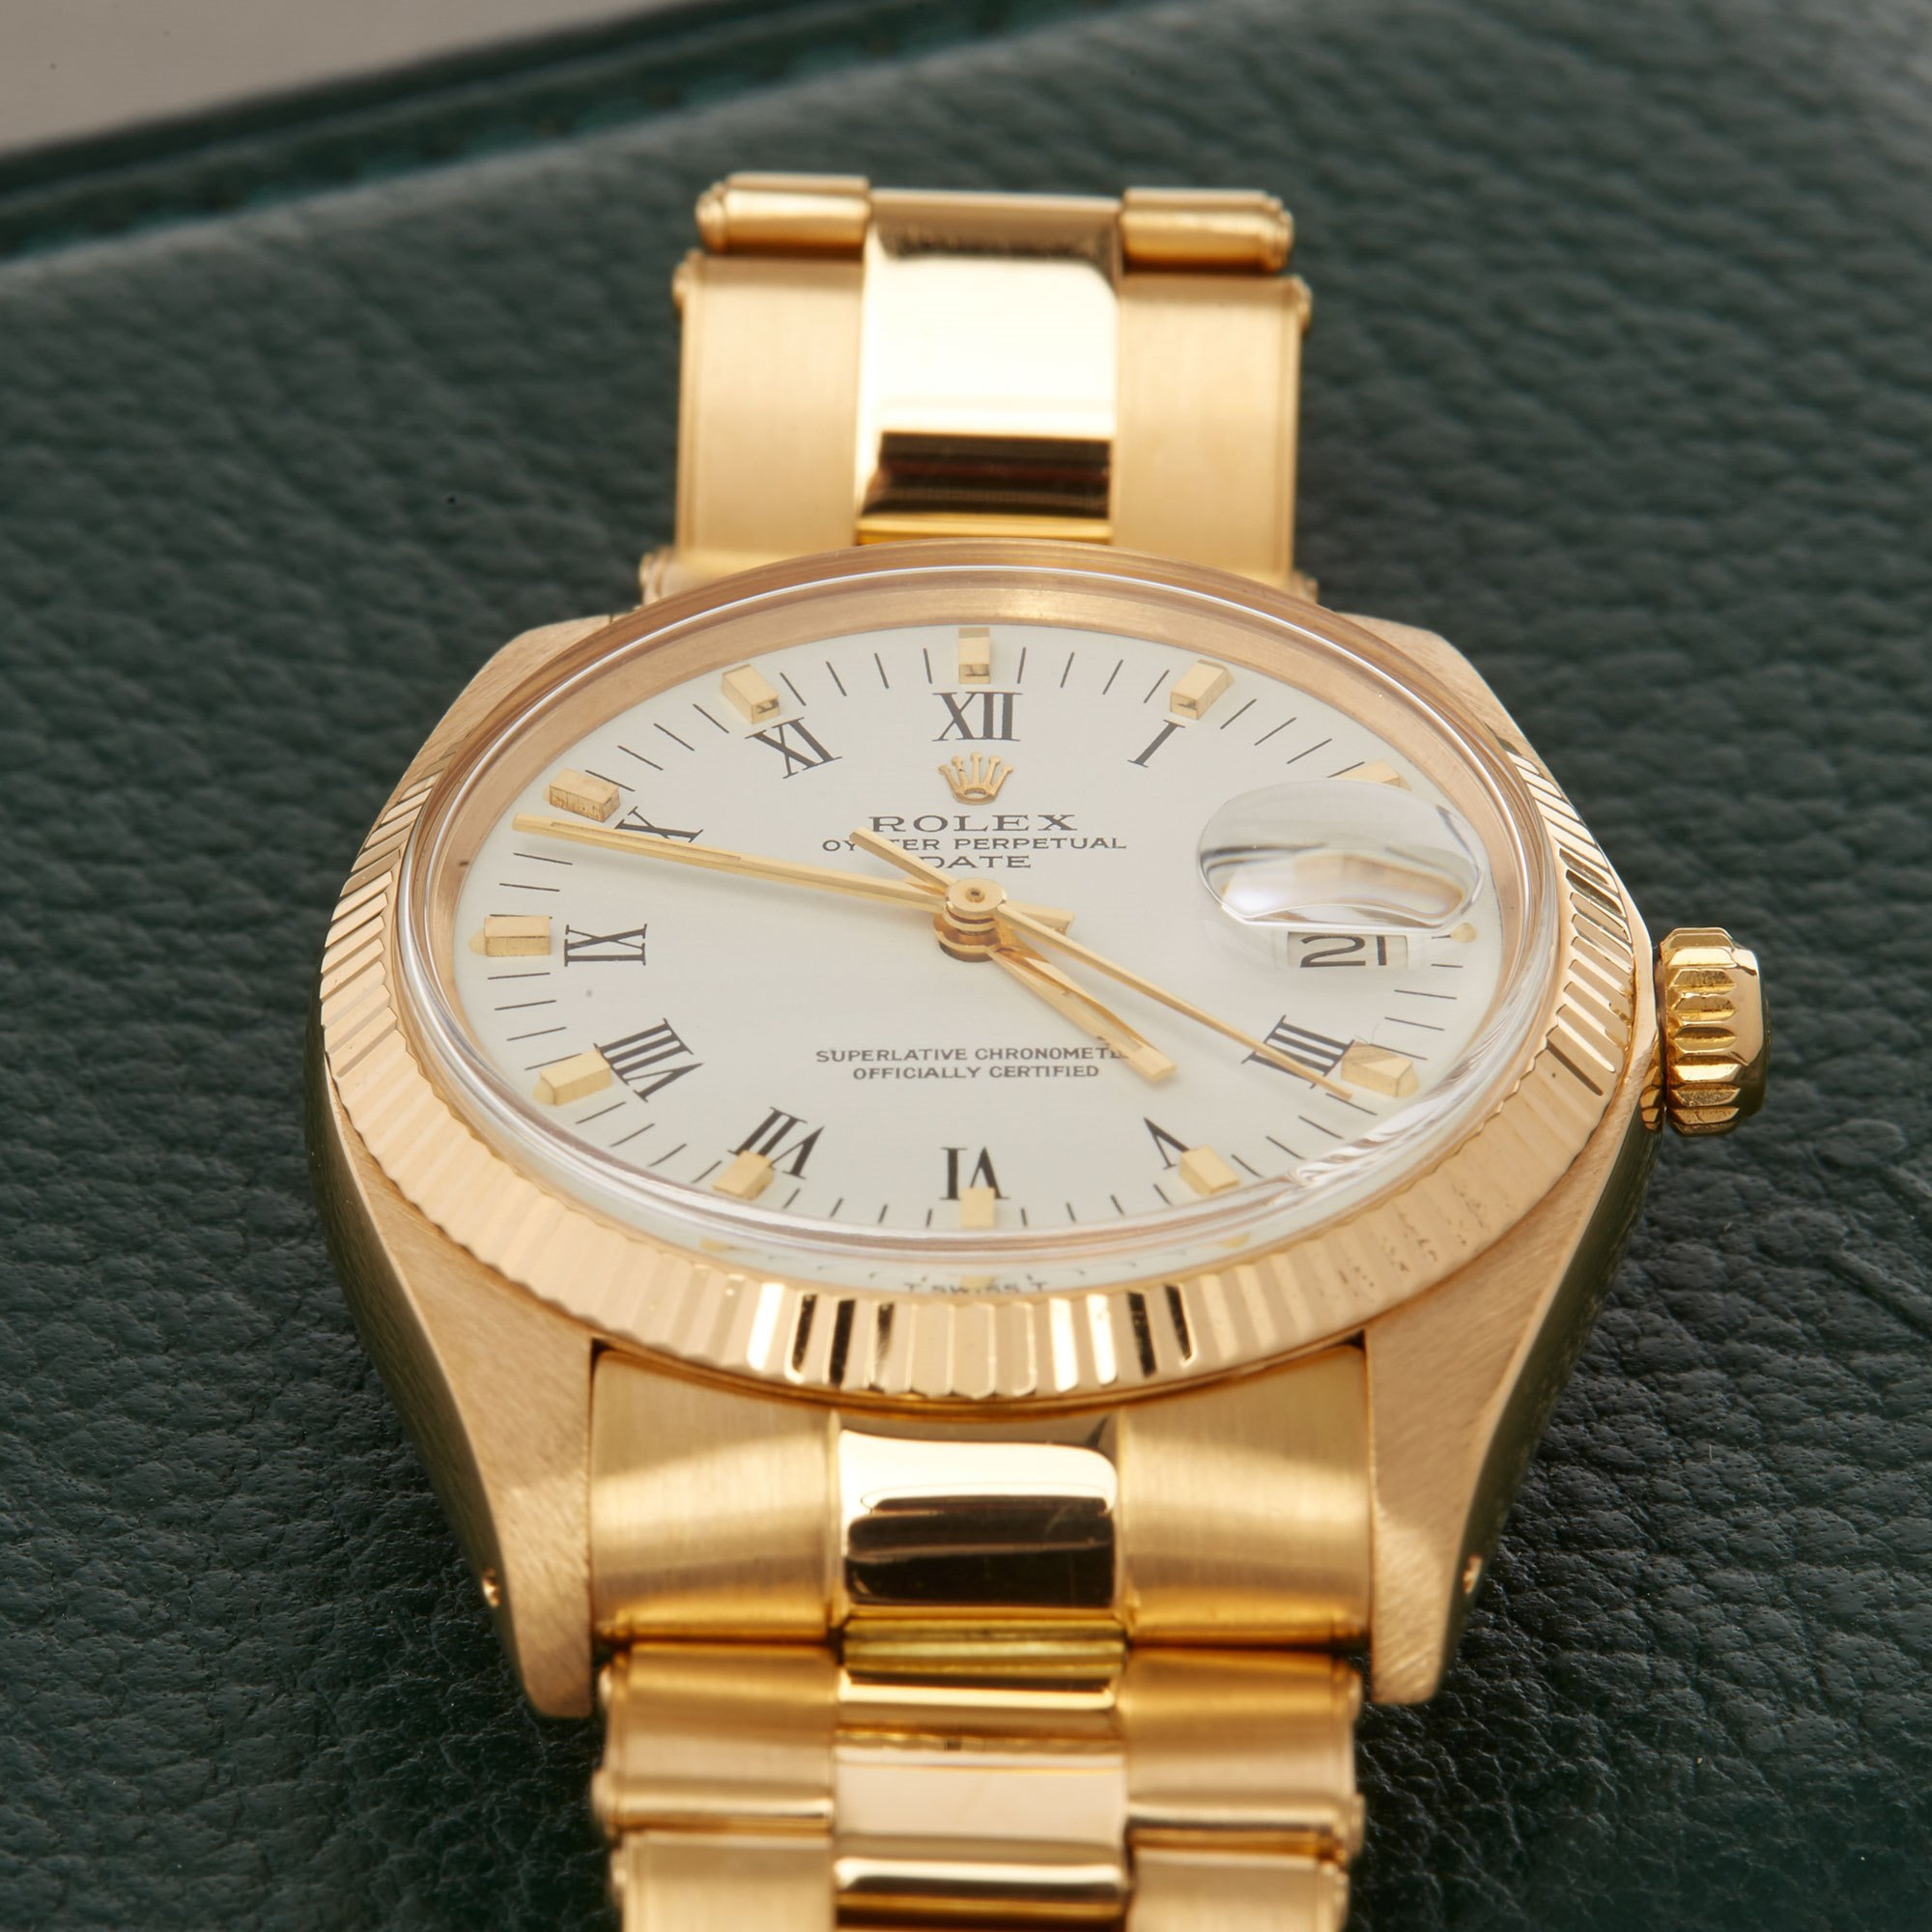 Rolex Oyster Perpetual Date 18K Yellow Gold - 1503 Yellow Gold 1503